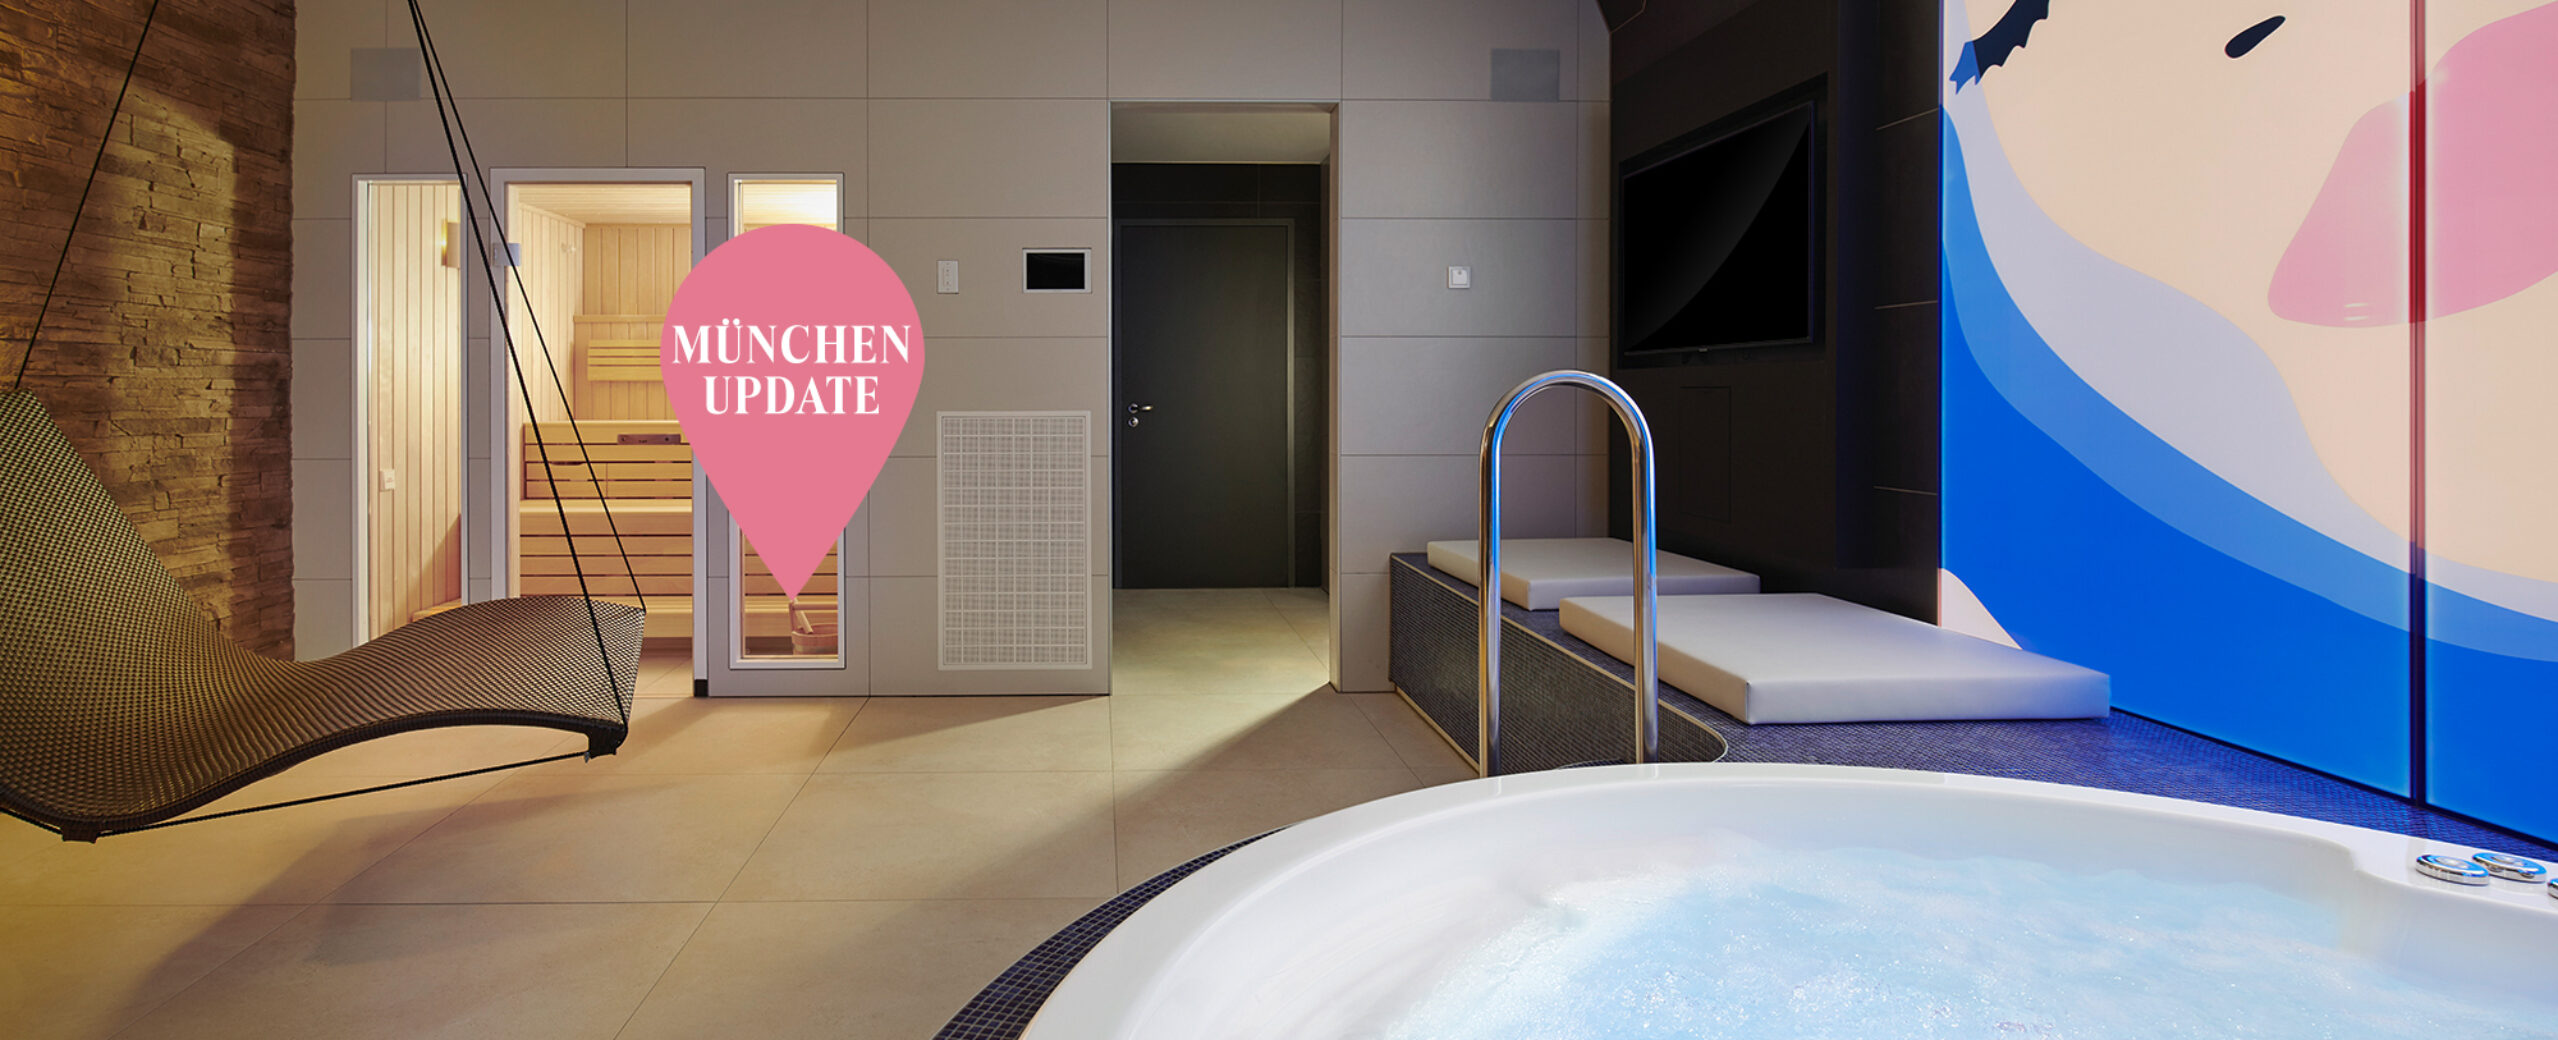 My Spa News Muenchen Update Header Januar